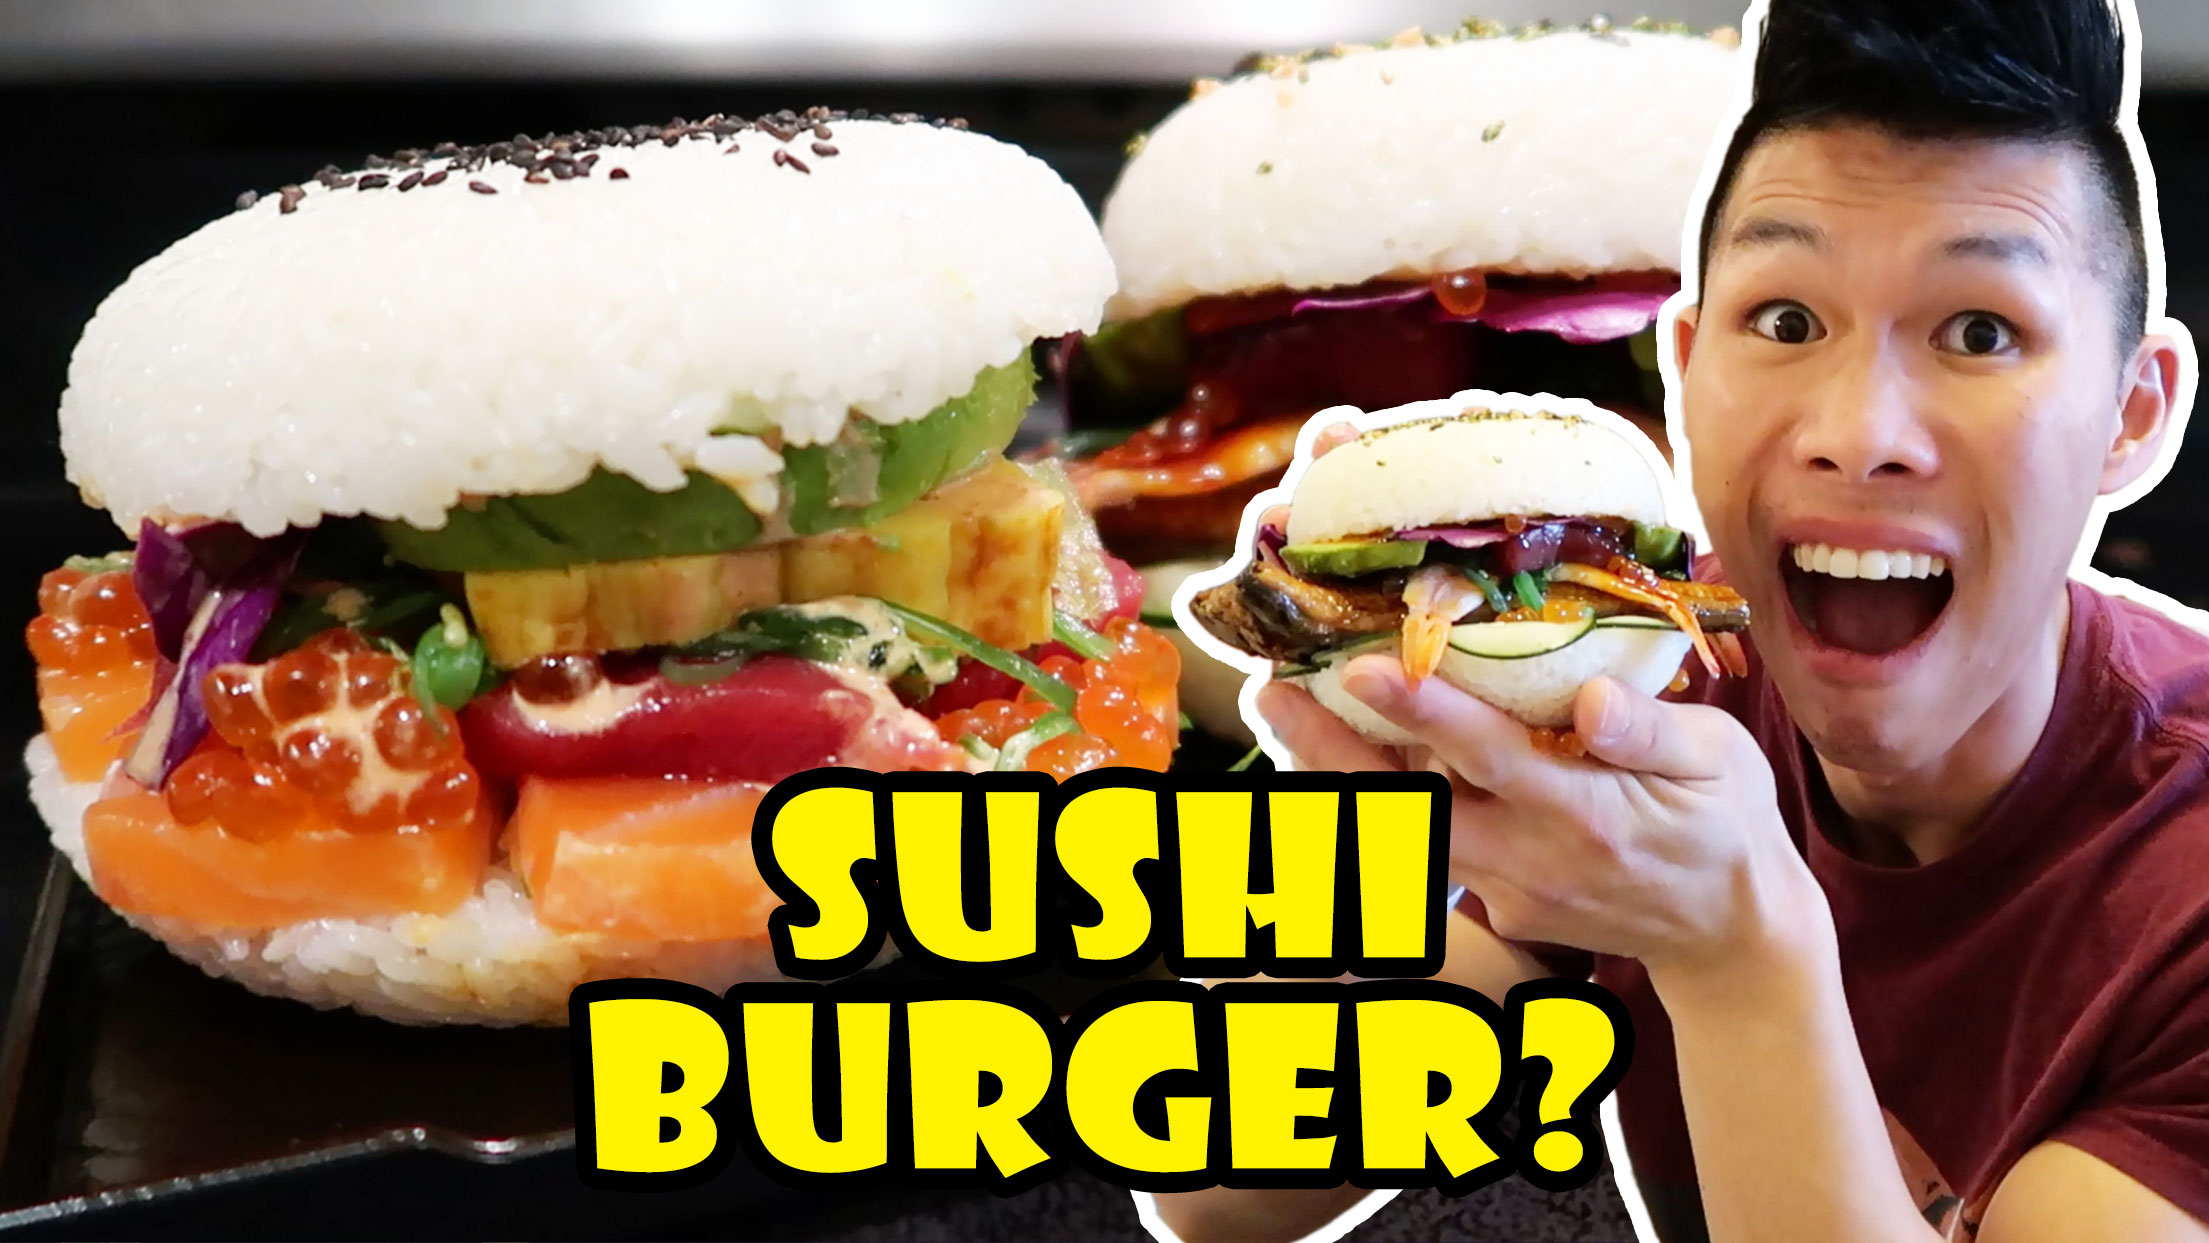 SUSHI BURGER: DIY Tasty or Too Much?